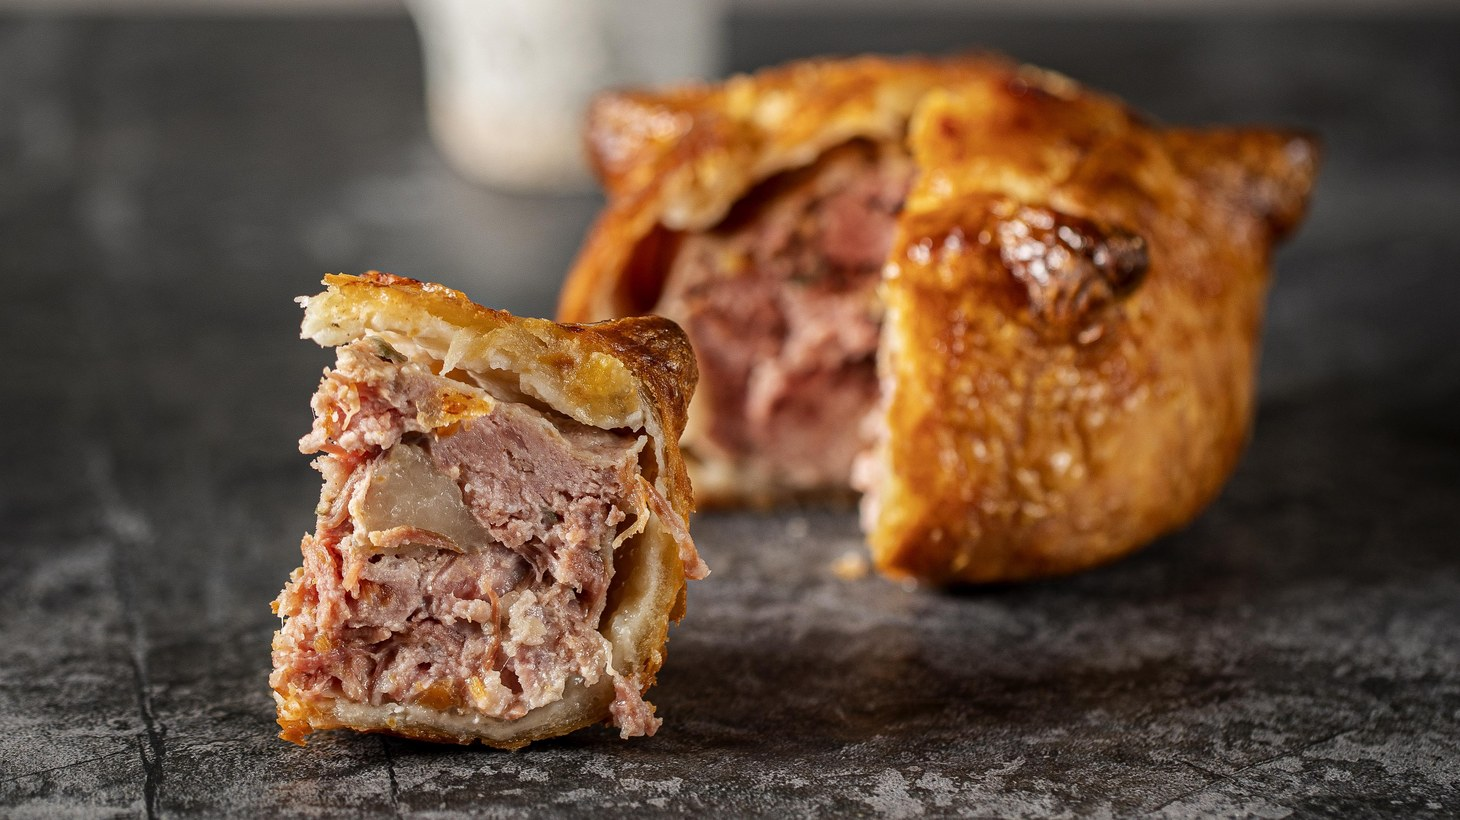 The Pie Room in London has been serving individual pies from a window during the pandemic, including this pork pie which co-host David Chang jokes is the accompaniment to any salad he will eat.